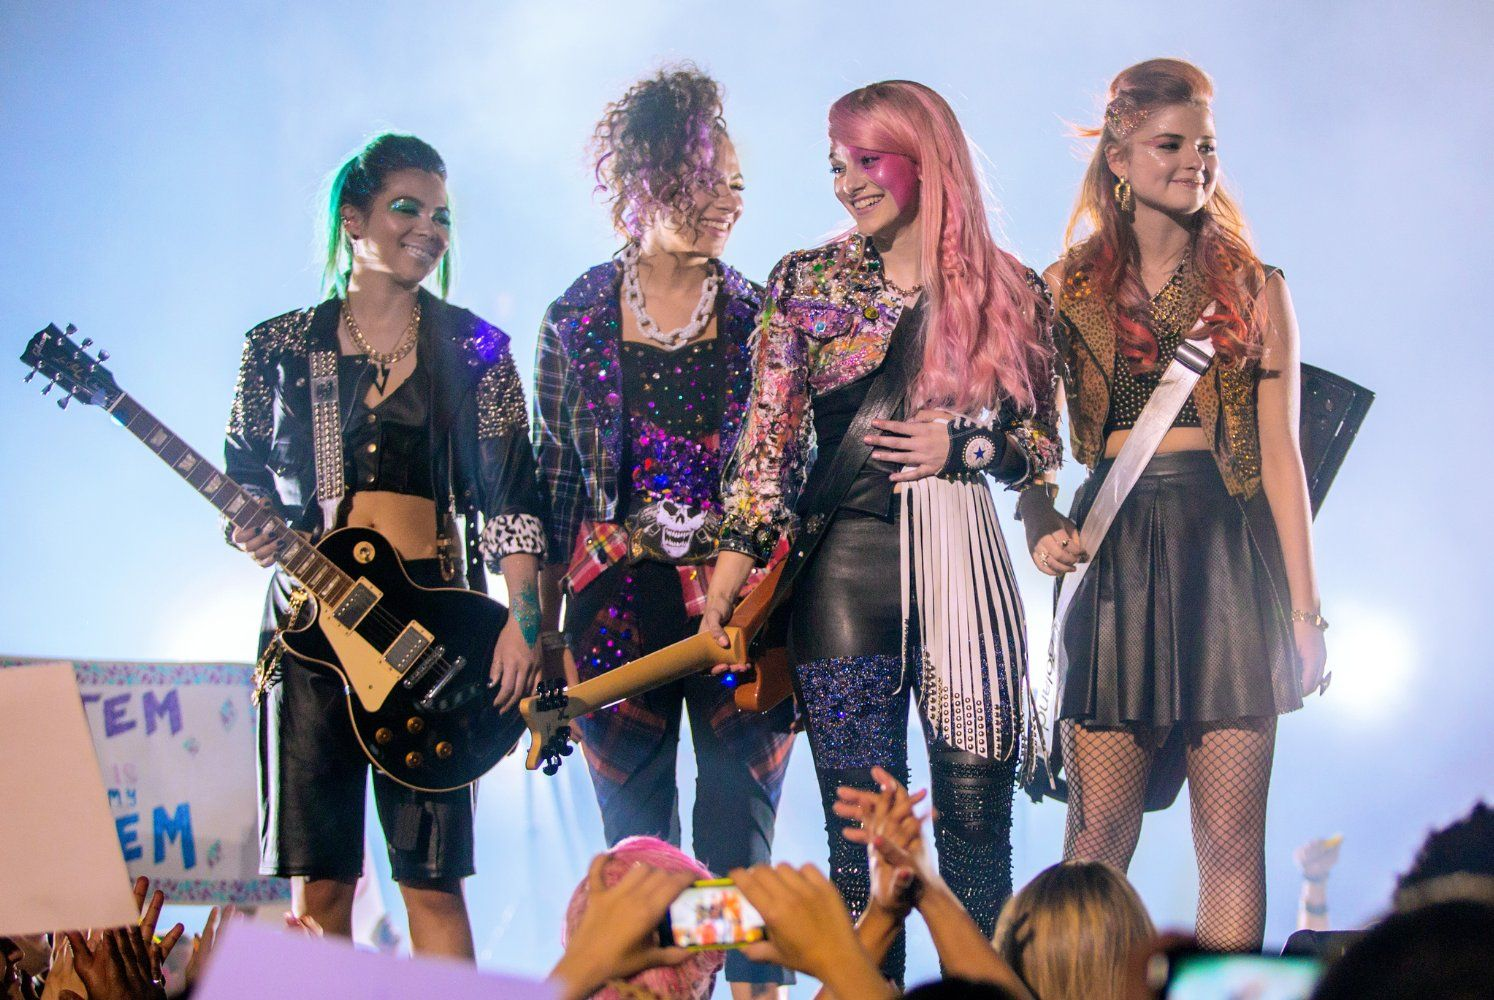 5 ways hollywood fucked up the jem and the holograms movie | blog